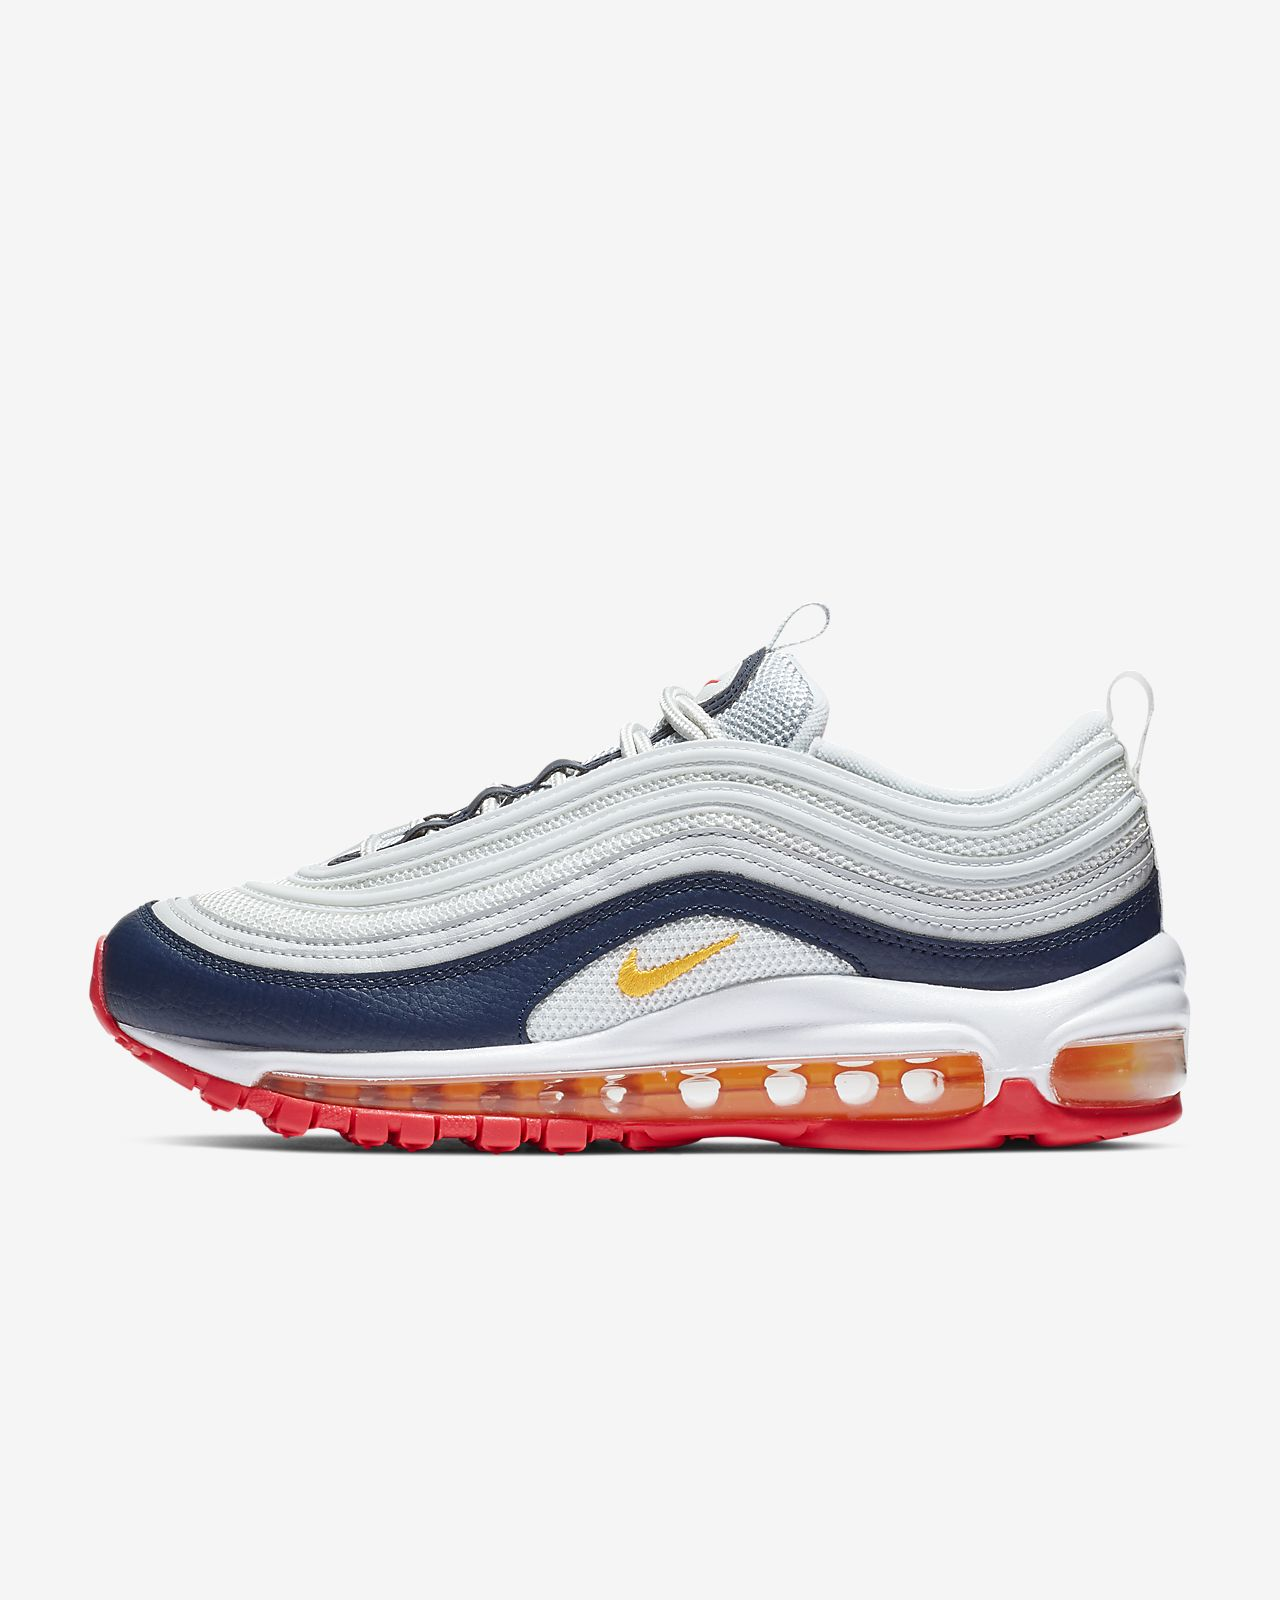 check out 55eb7 69e5b ... Buty damskie Nike Air Max 97 Premium